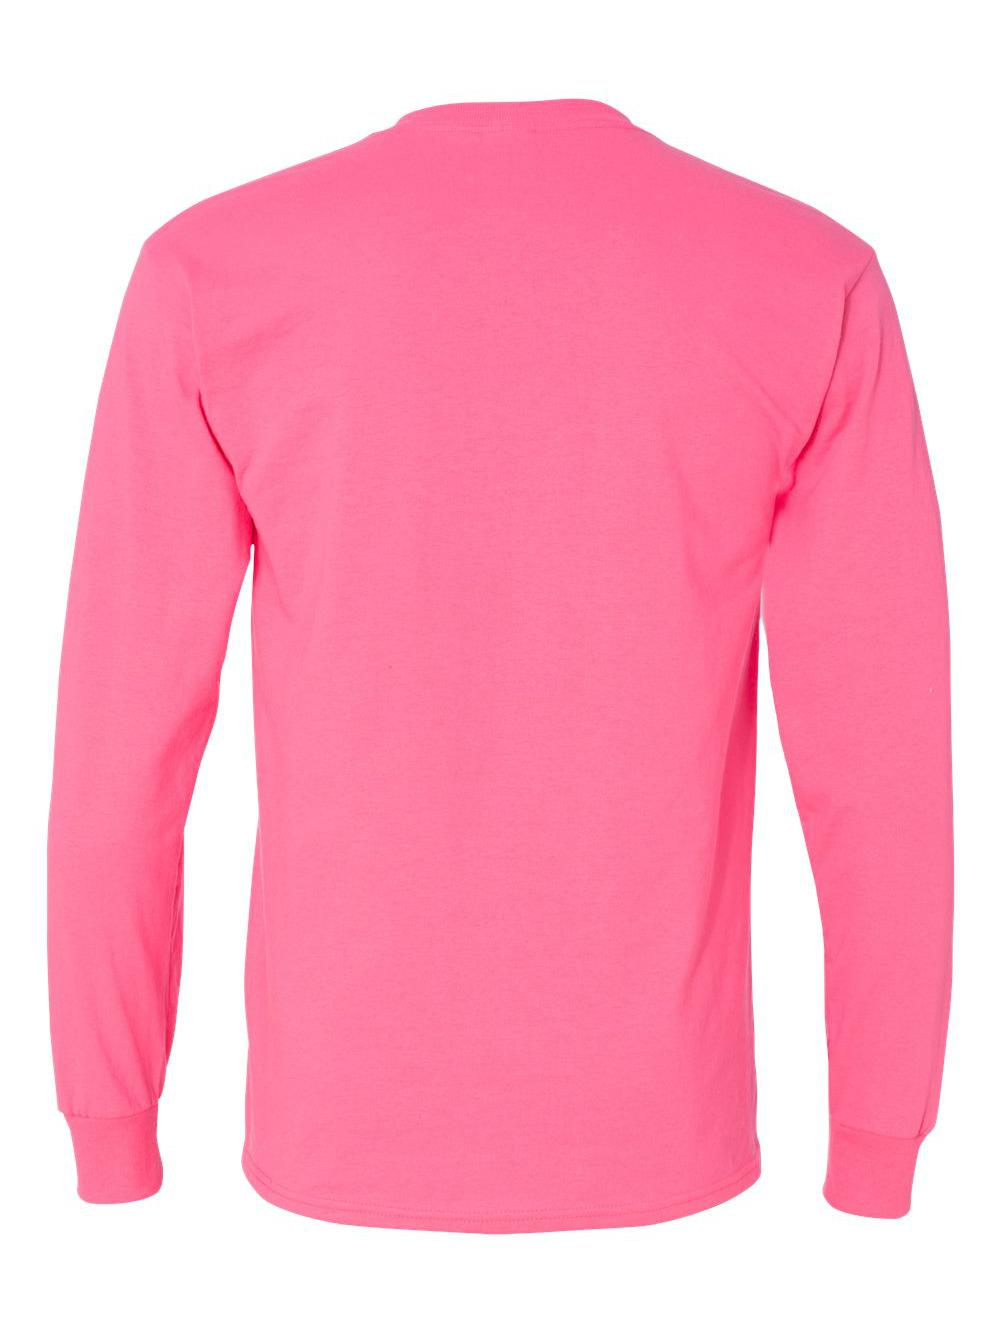 Fruit-of-the-Loom-HD-Cotton-Long-Sleeve-T-Shirt-4930R thumbnail 52